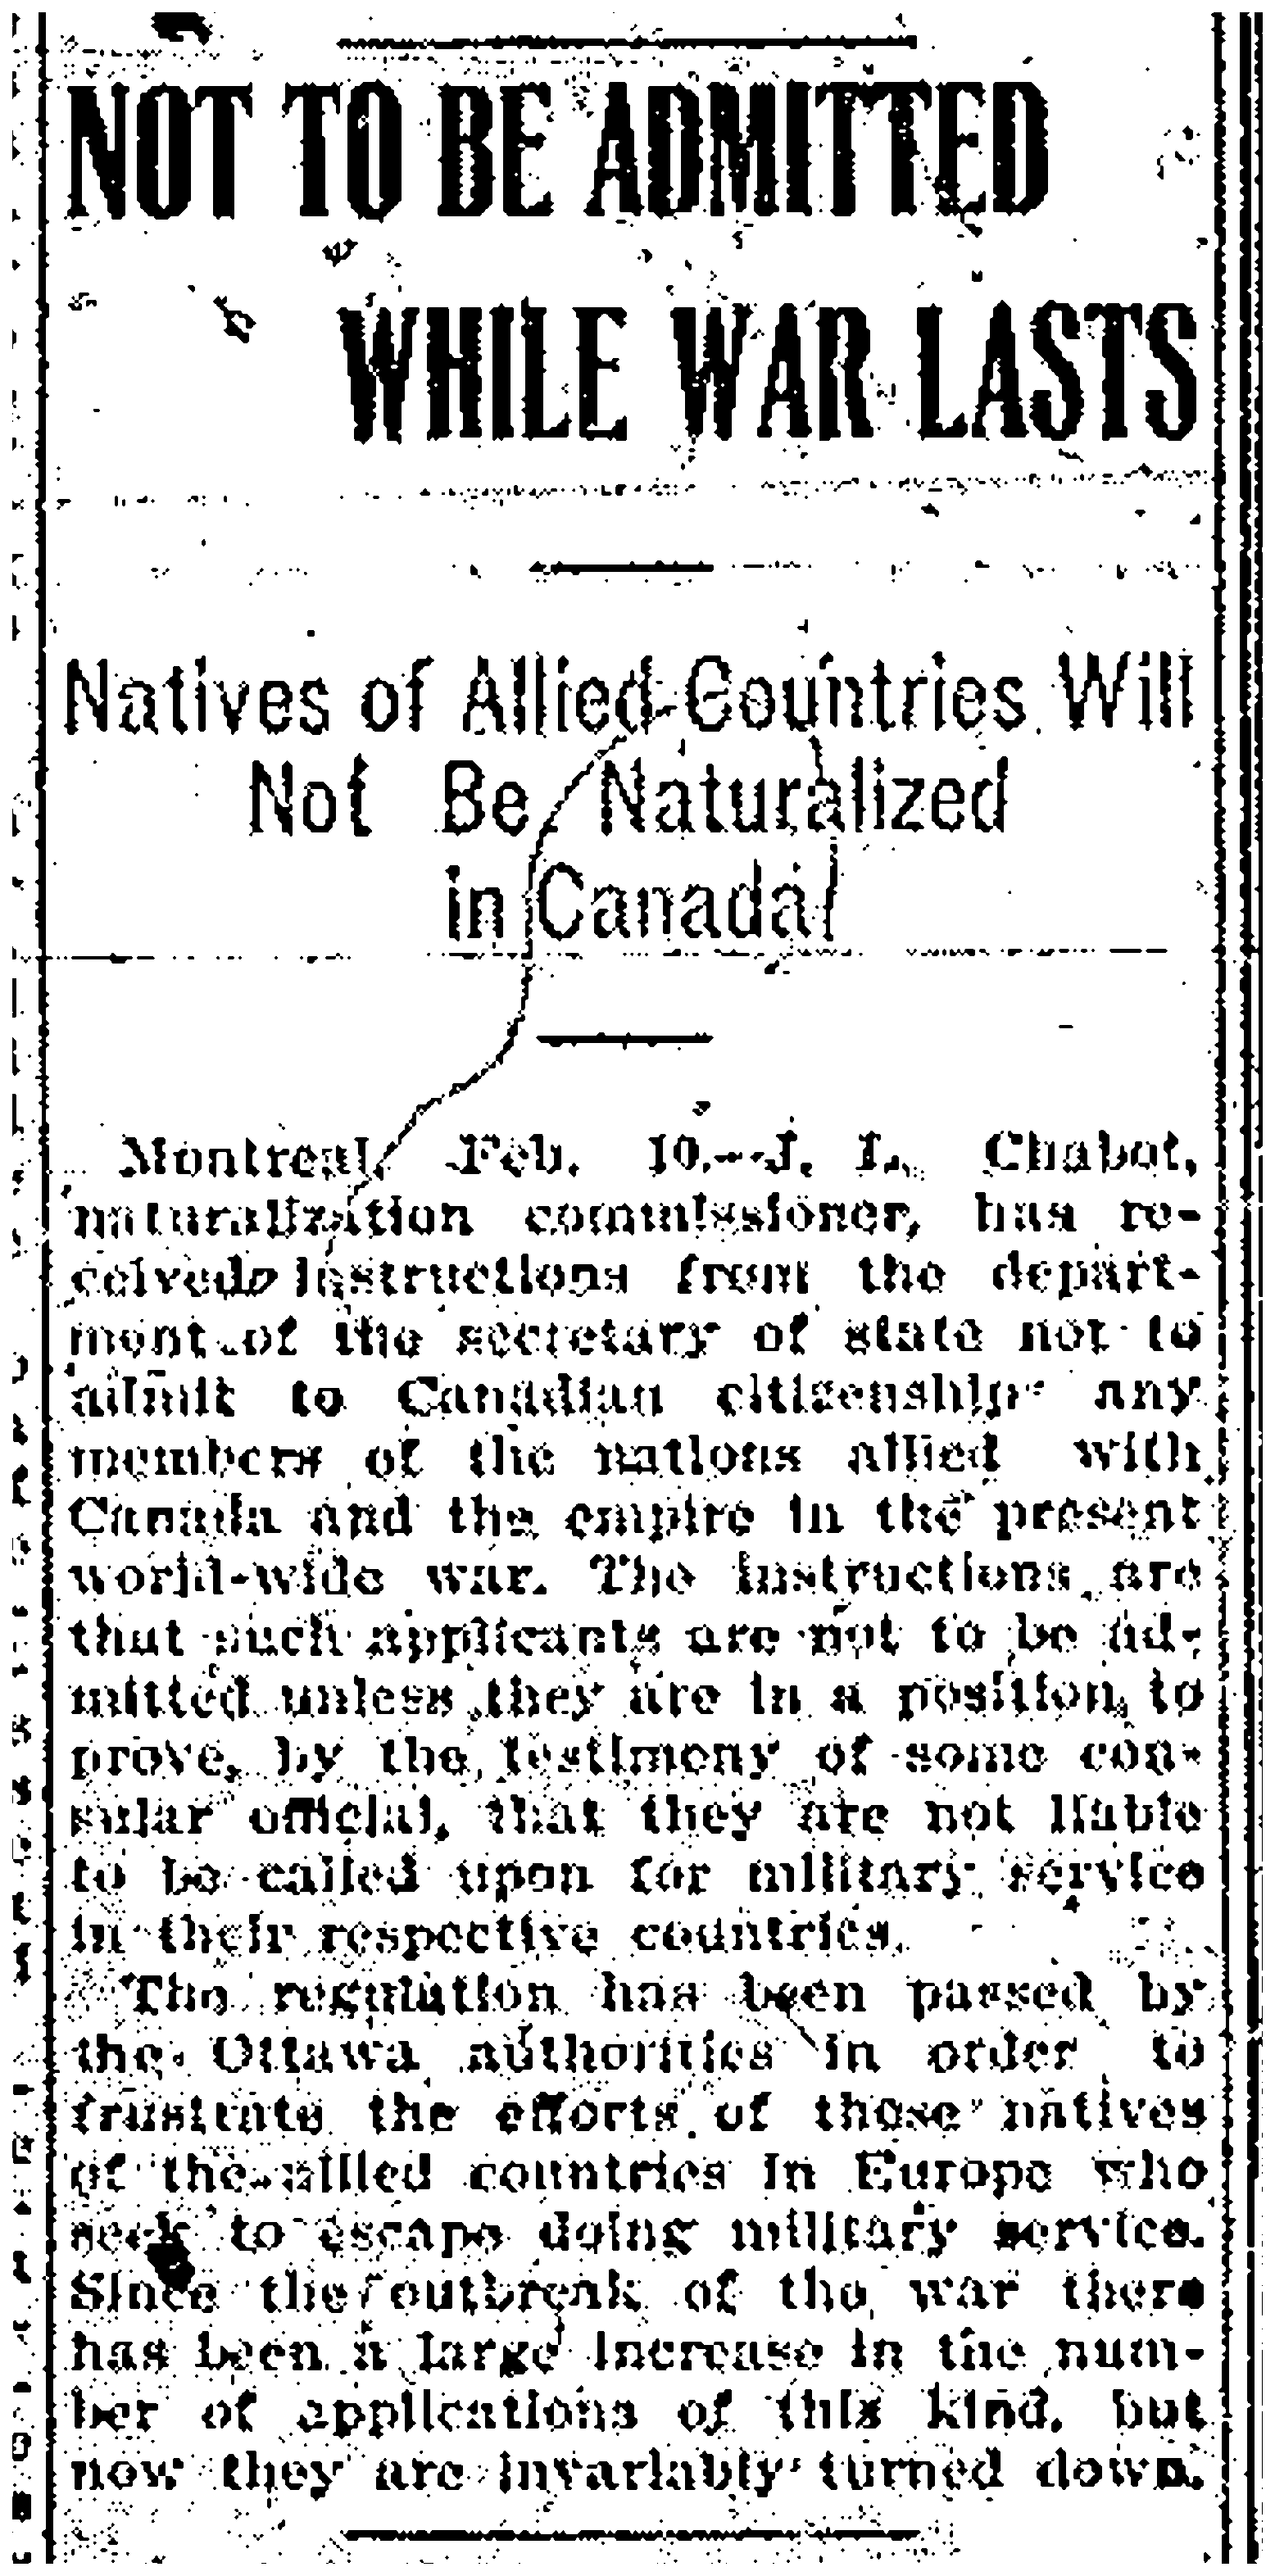 Allied Natives not to be Naturalized